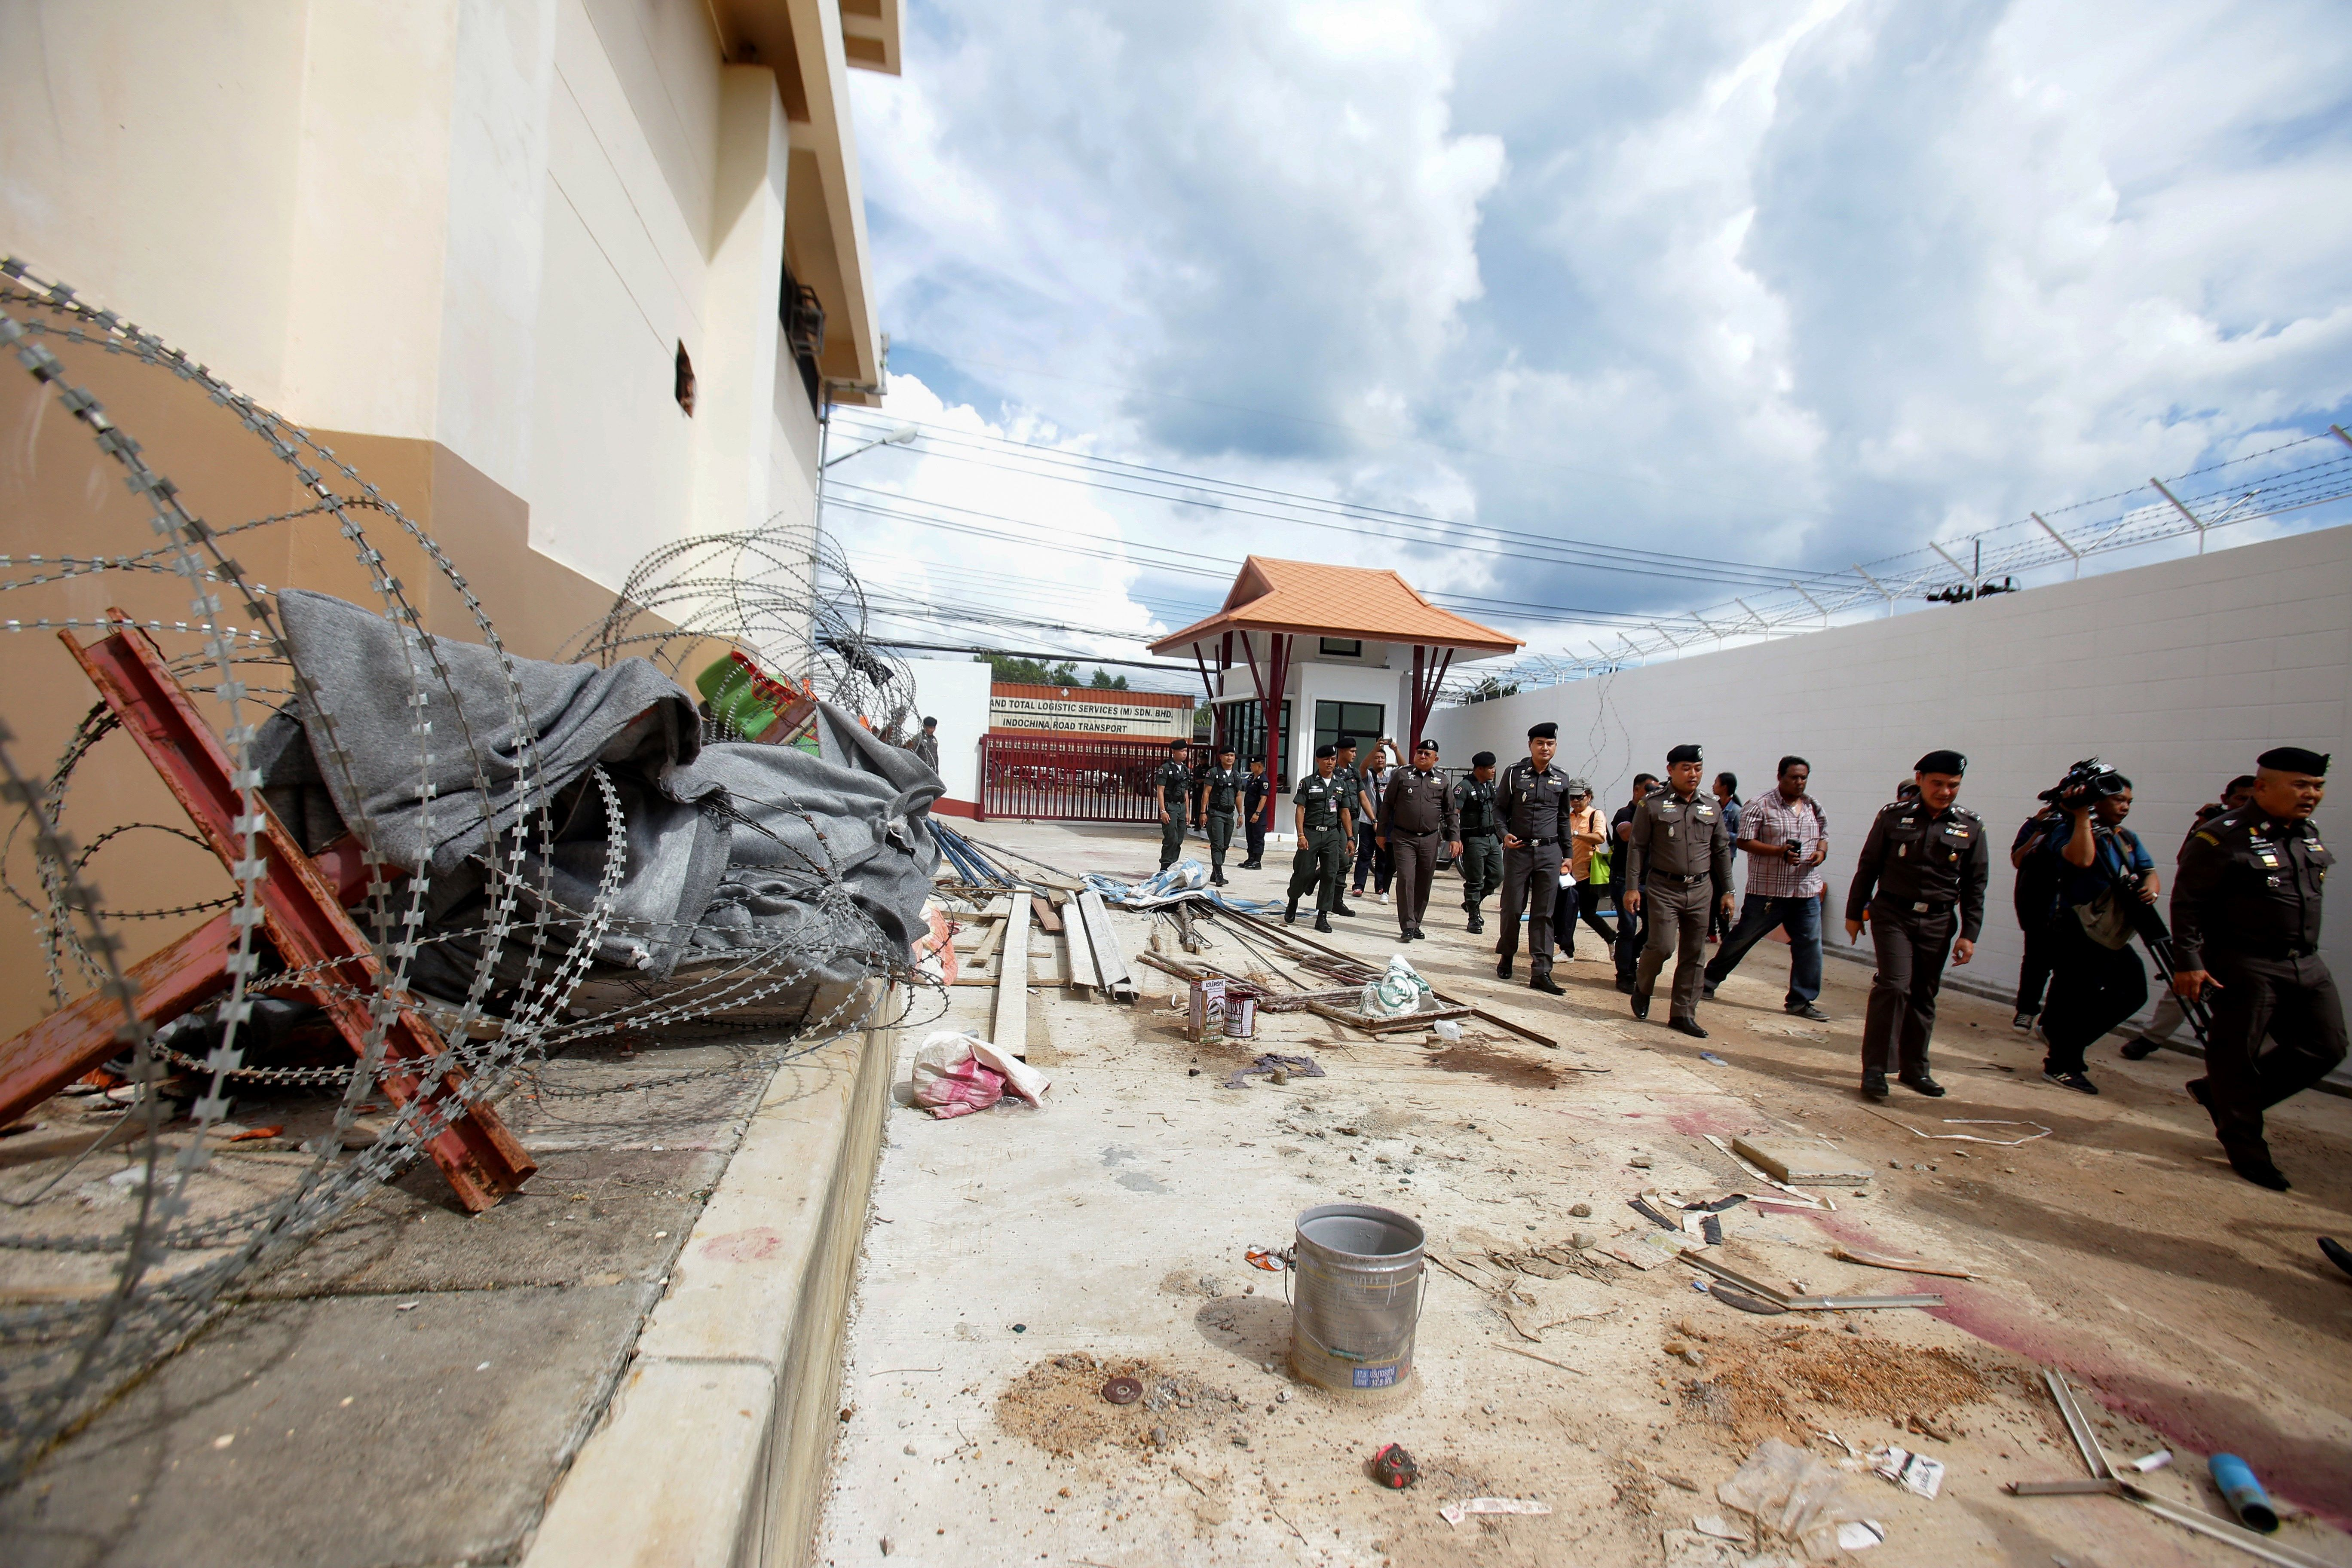 Police inspect the exterior of an immigration detention centre, from where 20 ethnic Uighurs escaped on Monday morning, in Sadao district in the southern Thai province of Songkhla on November 21, 2017. (TUWAEDANIYA MERINGING/AFP/Getty Images)